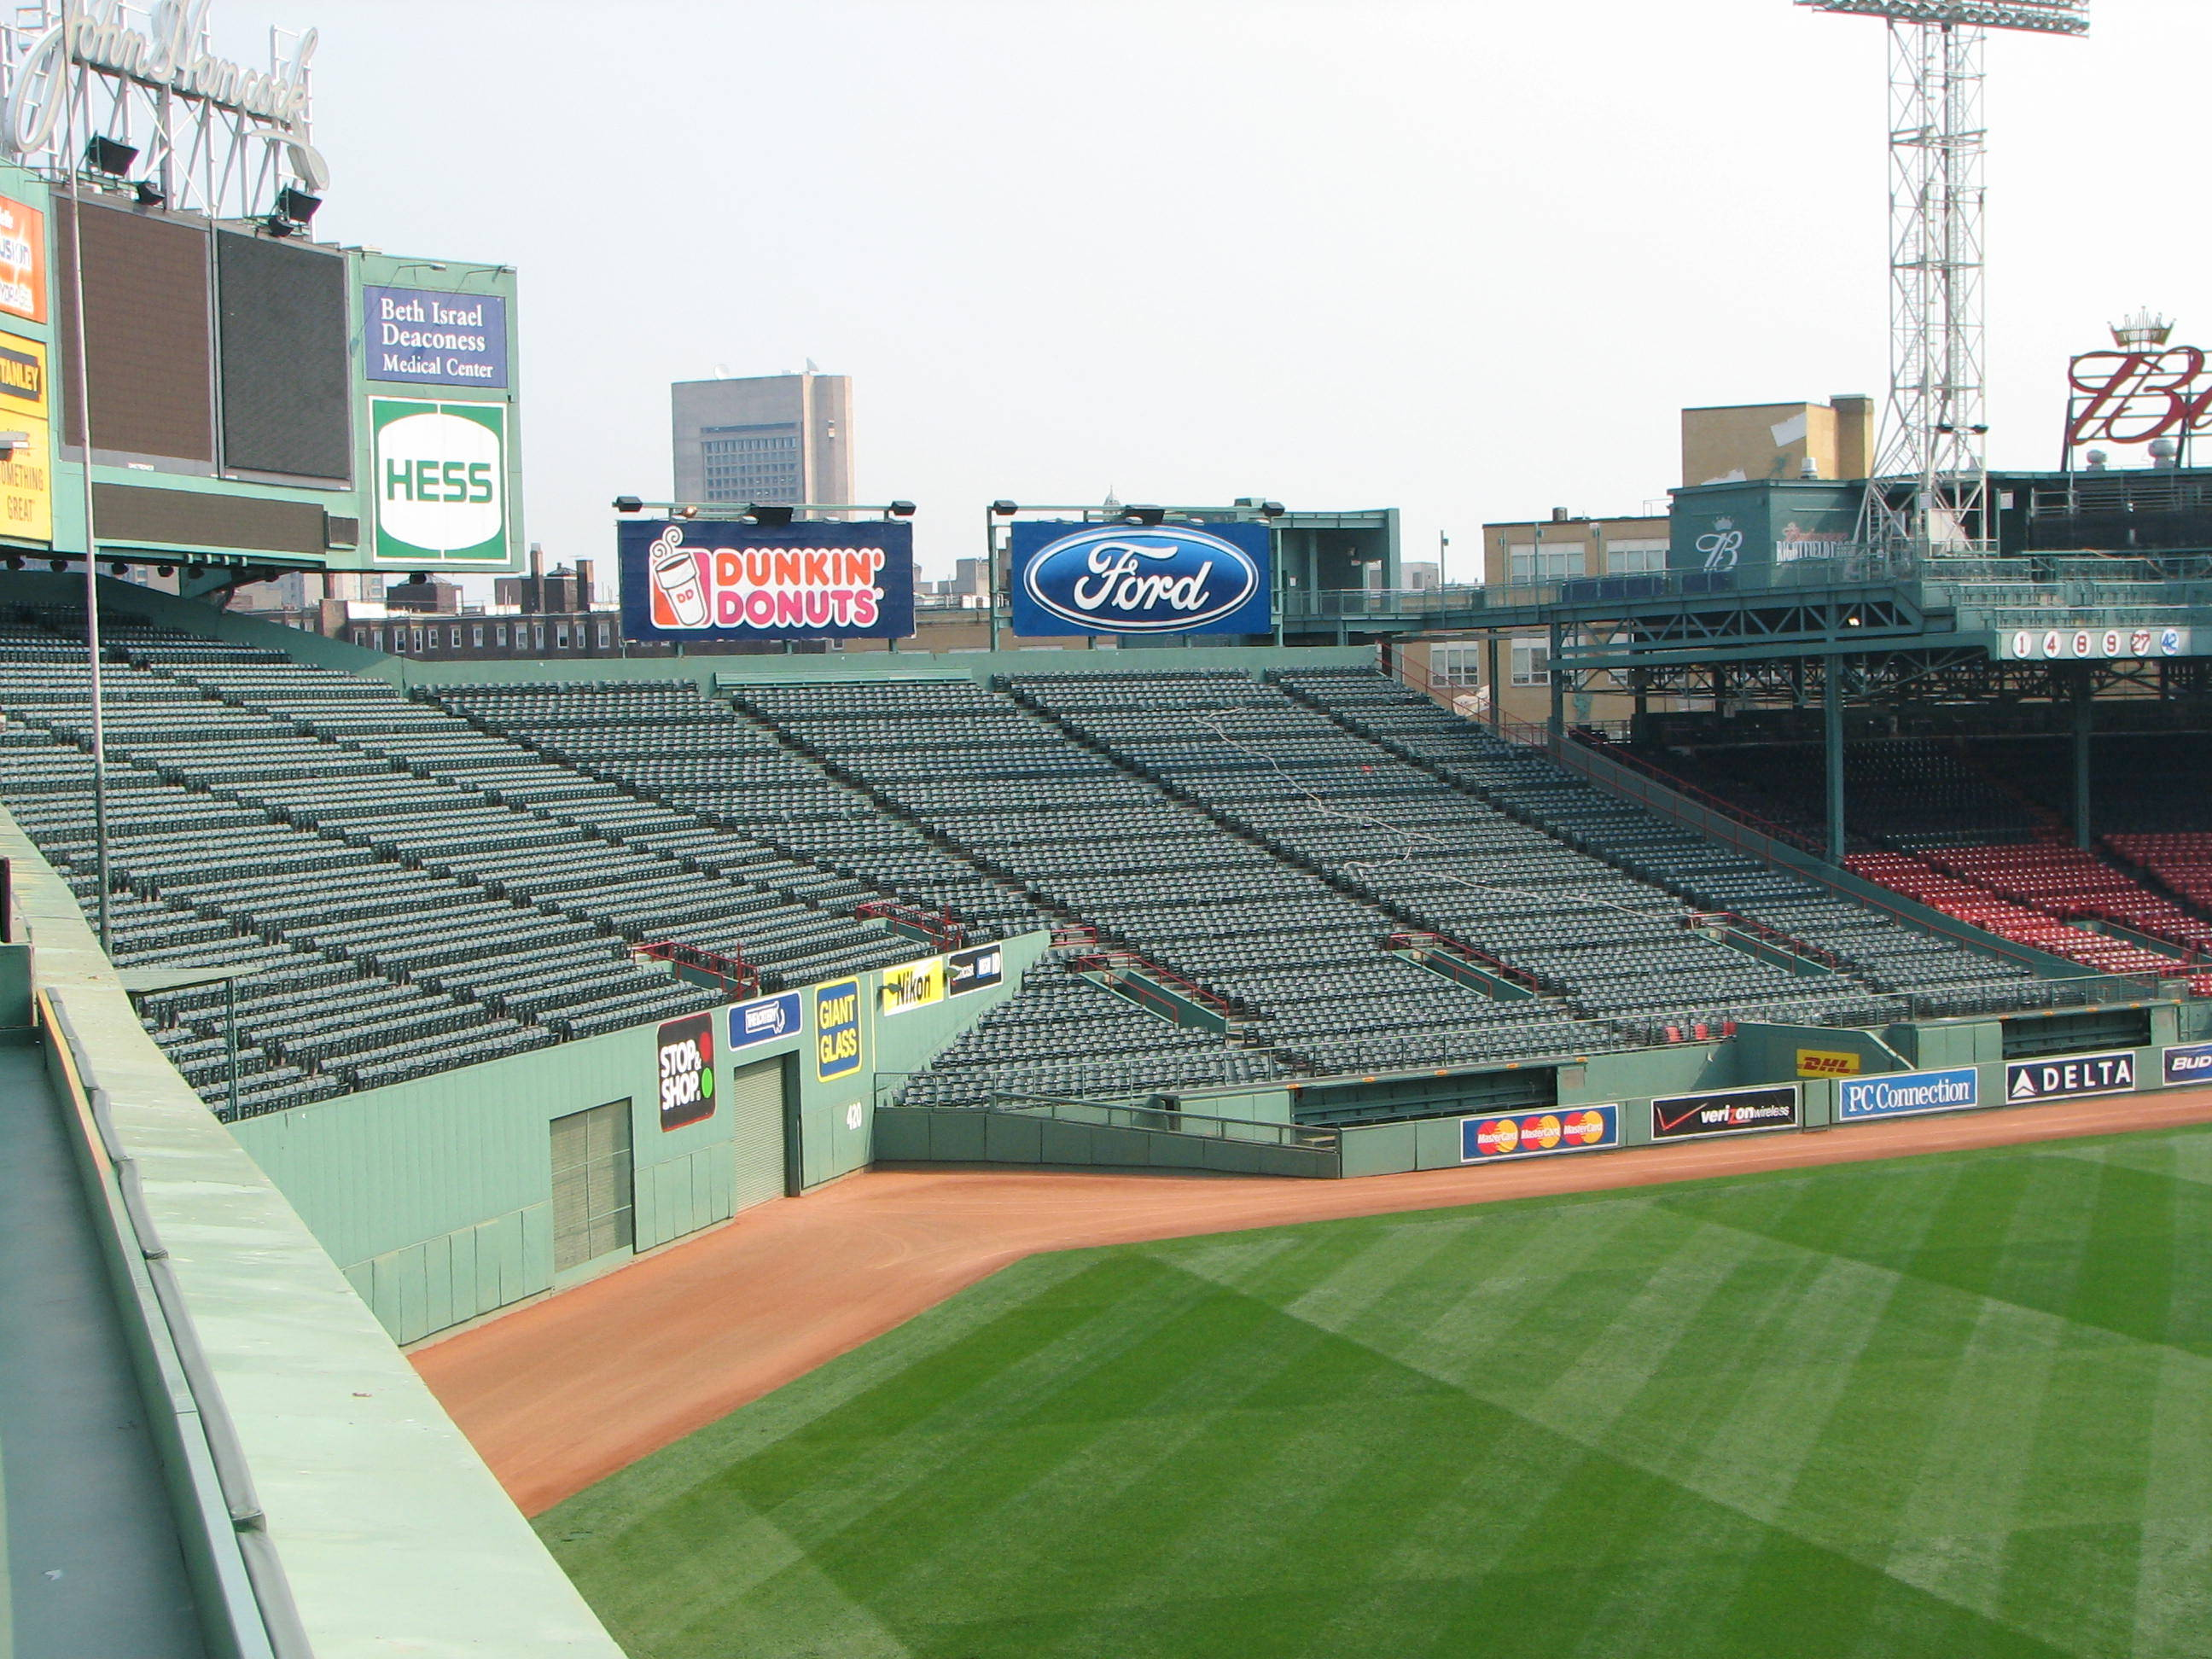 description of fenway park essay Download thesis statement on fenway park:5x5 essay including the 5 senses on fenway park in our database or order an original thesis paper that will be written by one.